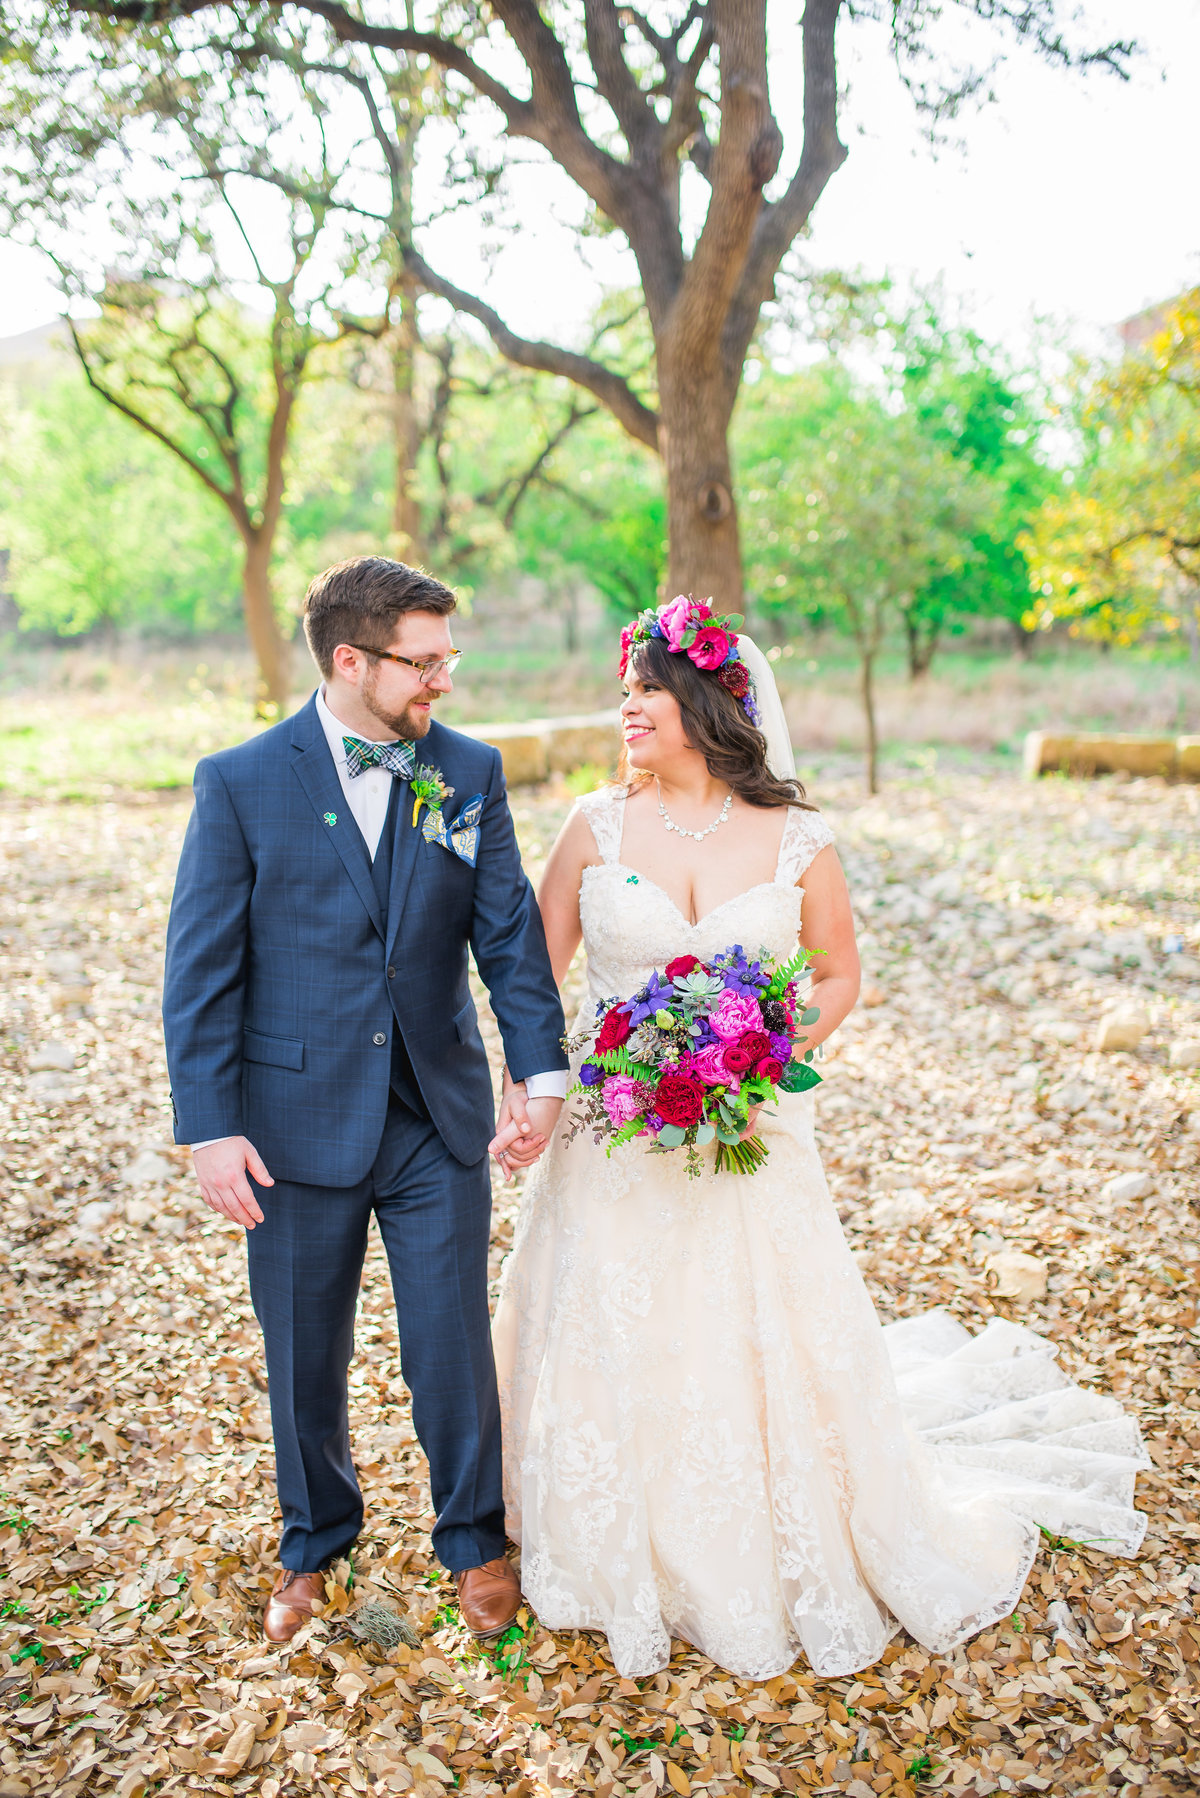 UndertheSunPhotography_PearceWedding-6053